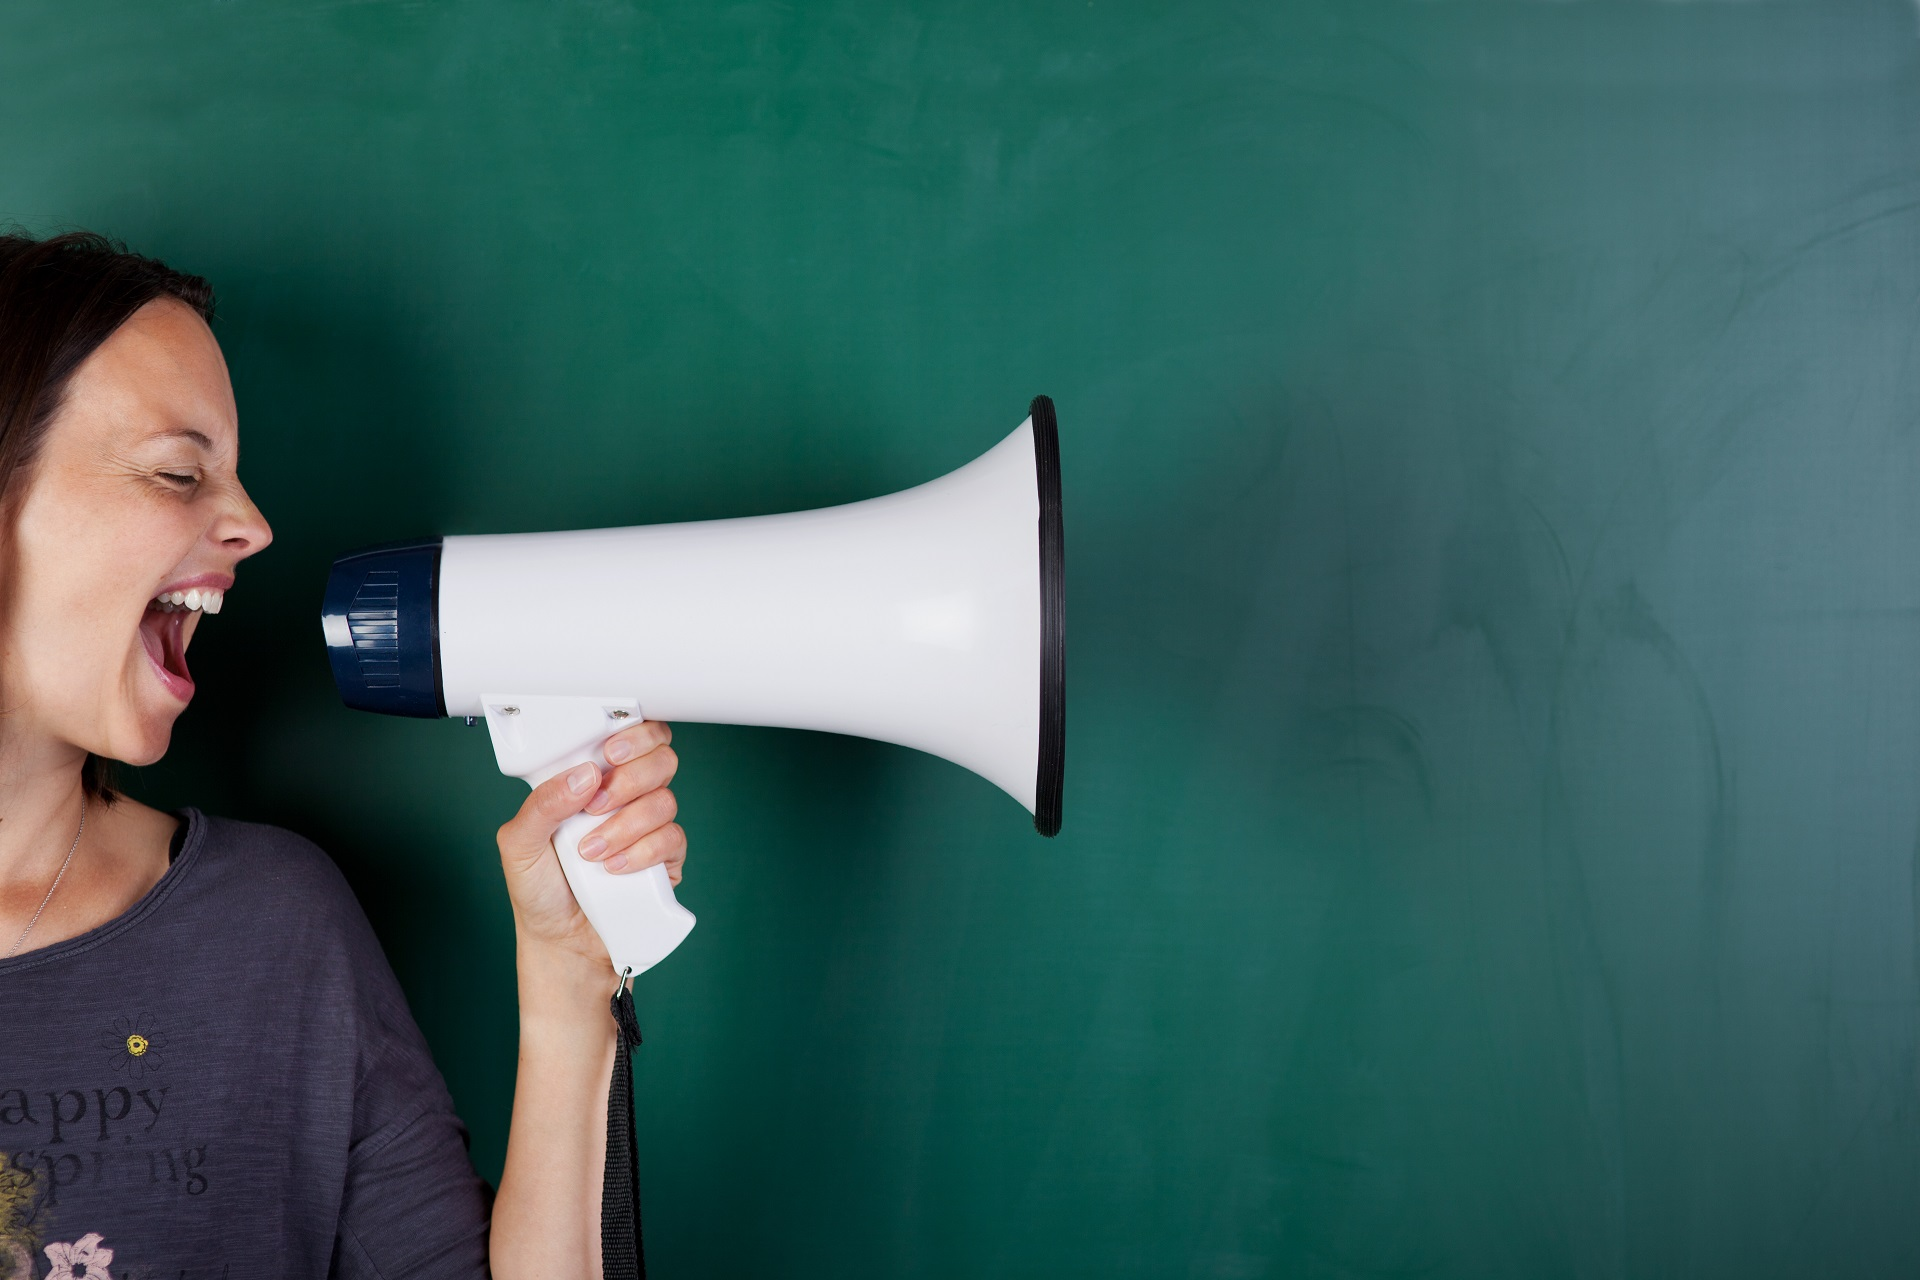 A woman yelling into a megaphone